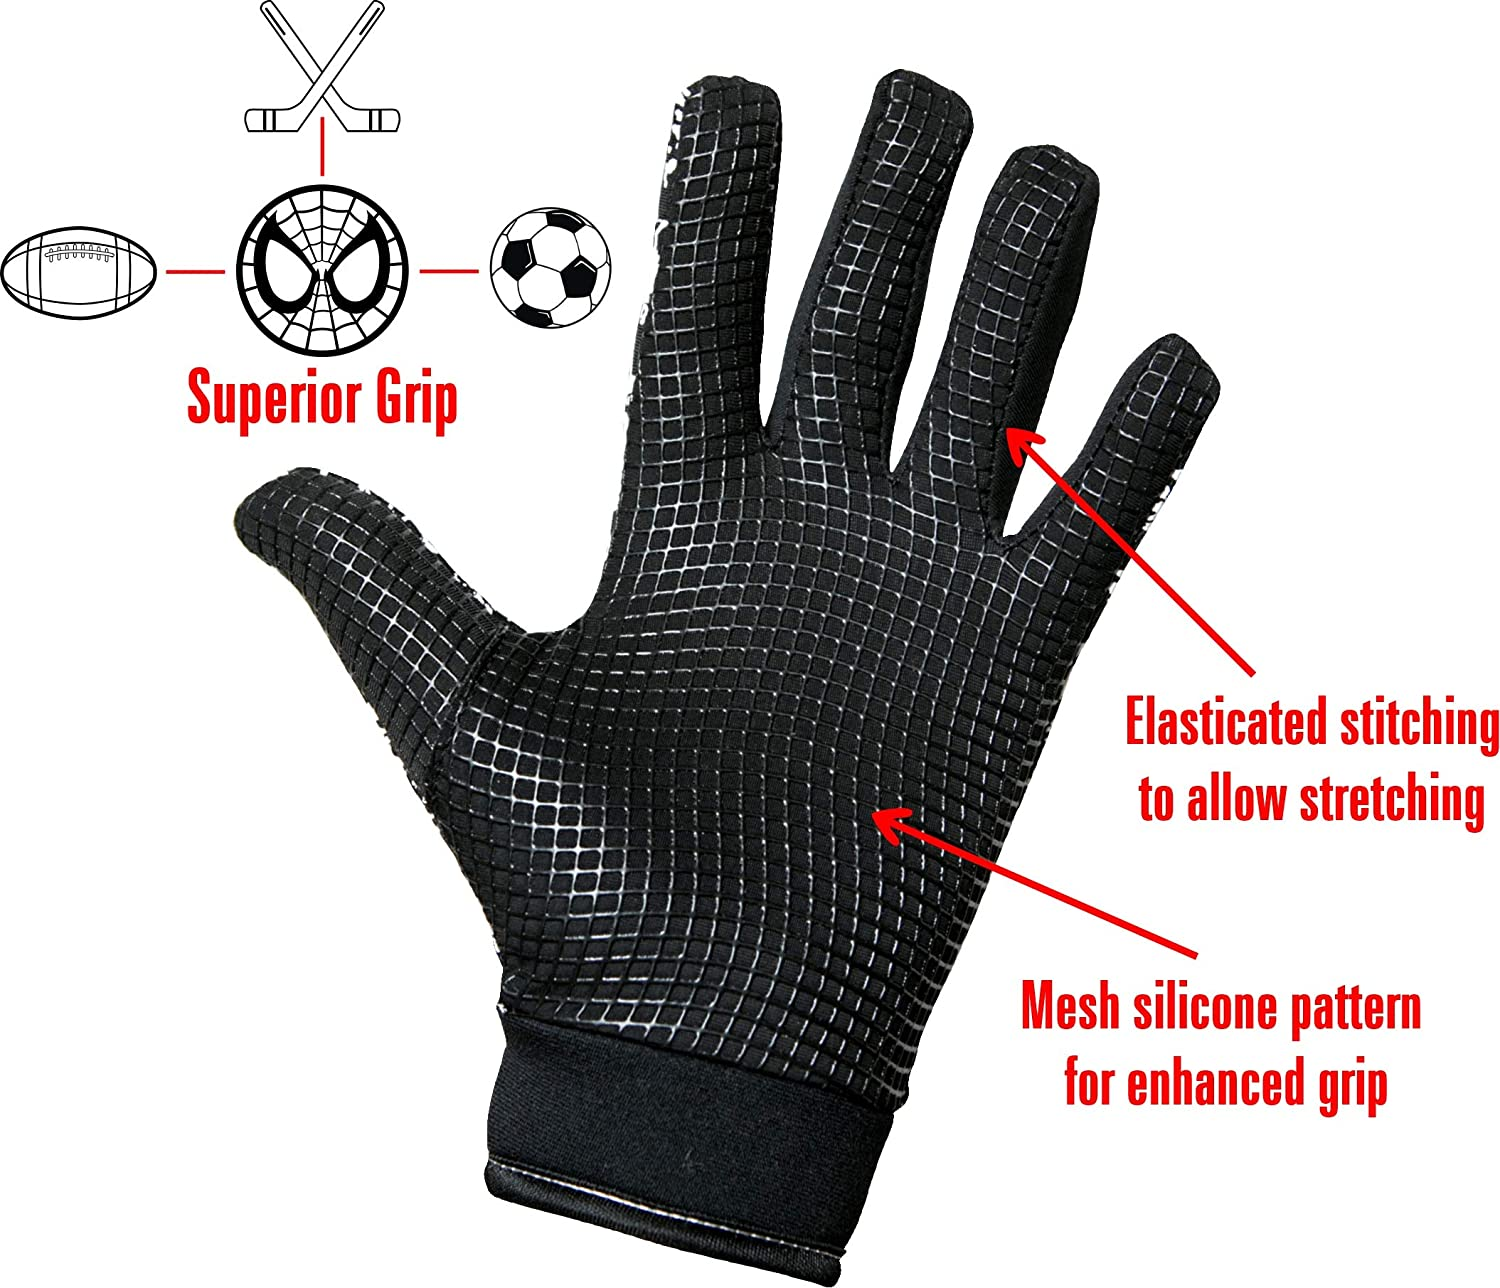 Mountain Biking Rugby Ideal for Football Cycling Tuoni Junior Thermal Multi sports glove with silicone grip Hockey Running /& Netball.